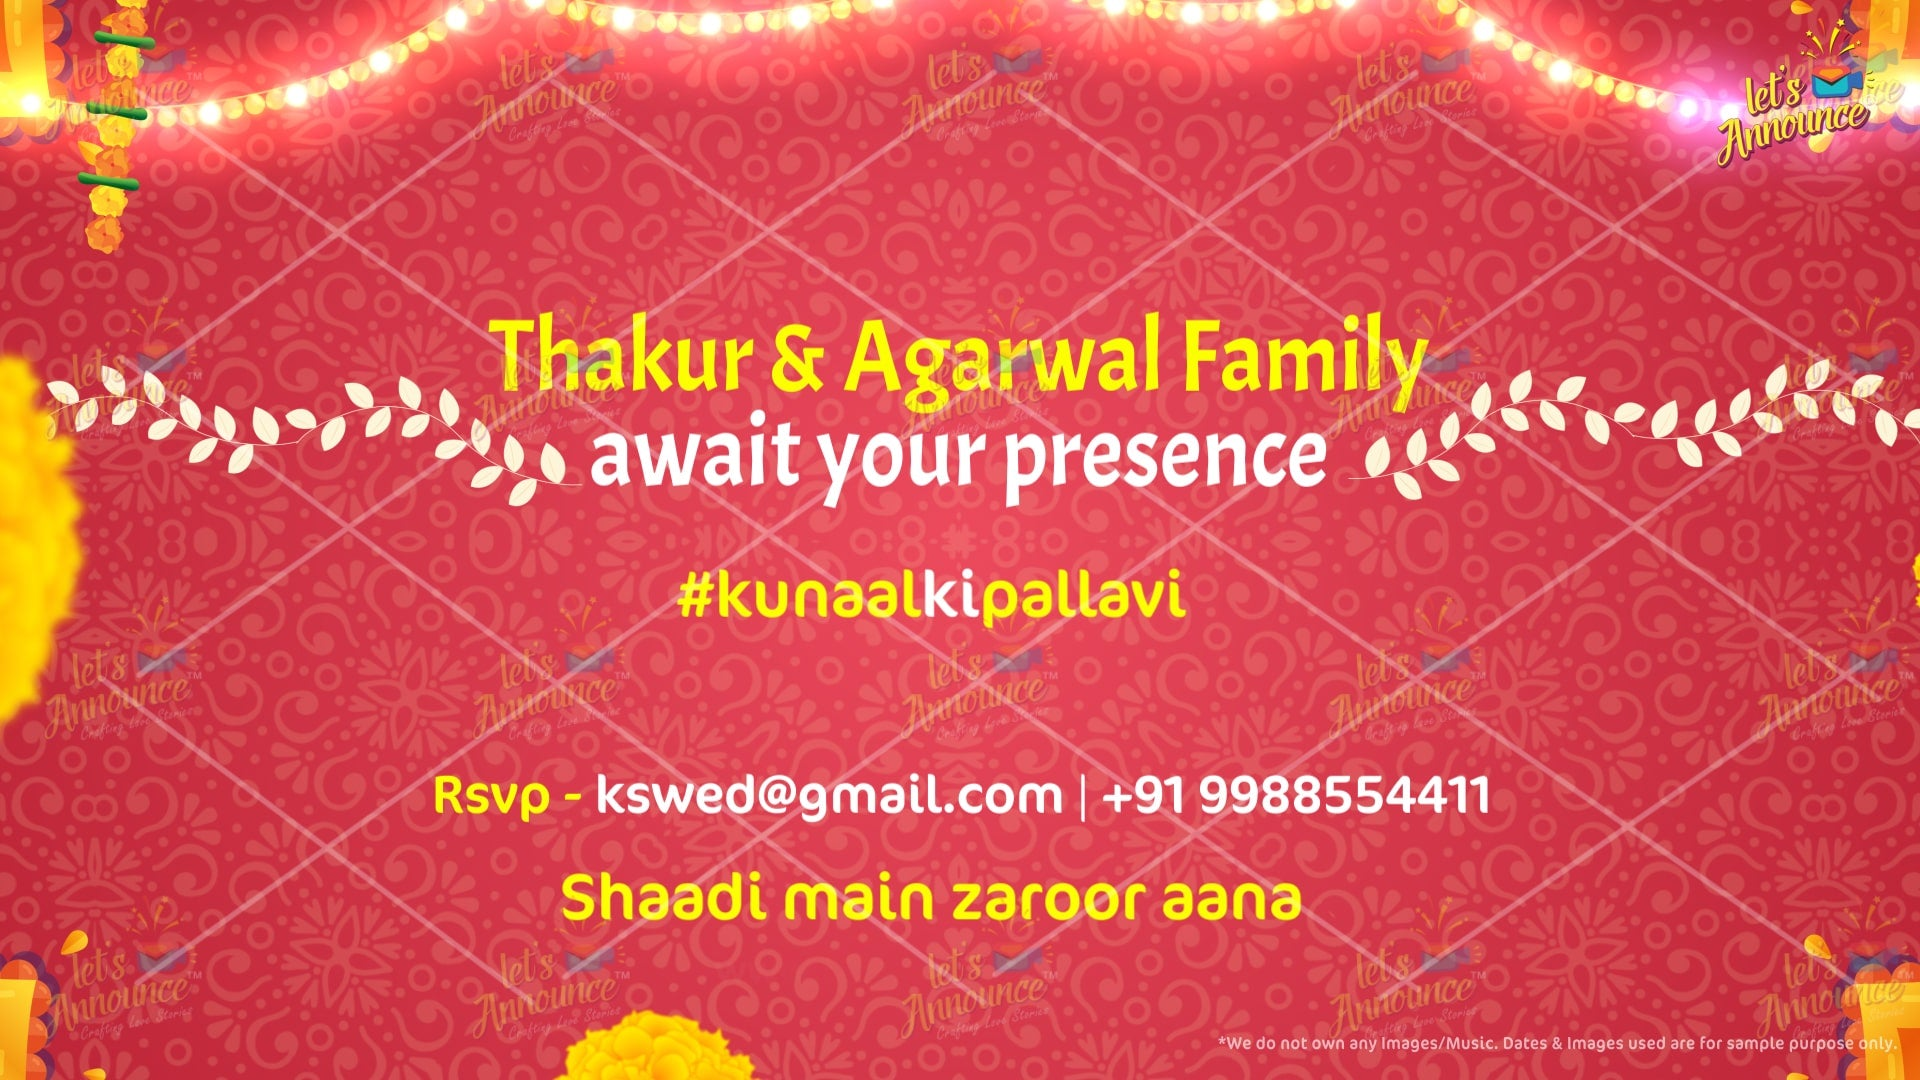 Marwadi punjabi bengali southindian Gujrati Hindu Muslim christian wedding invitation